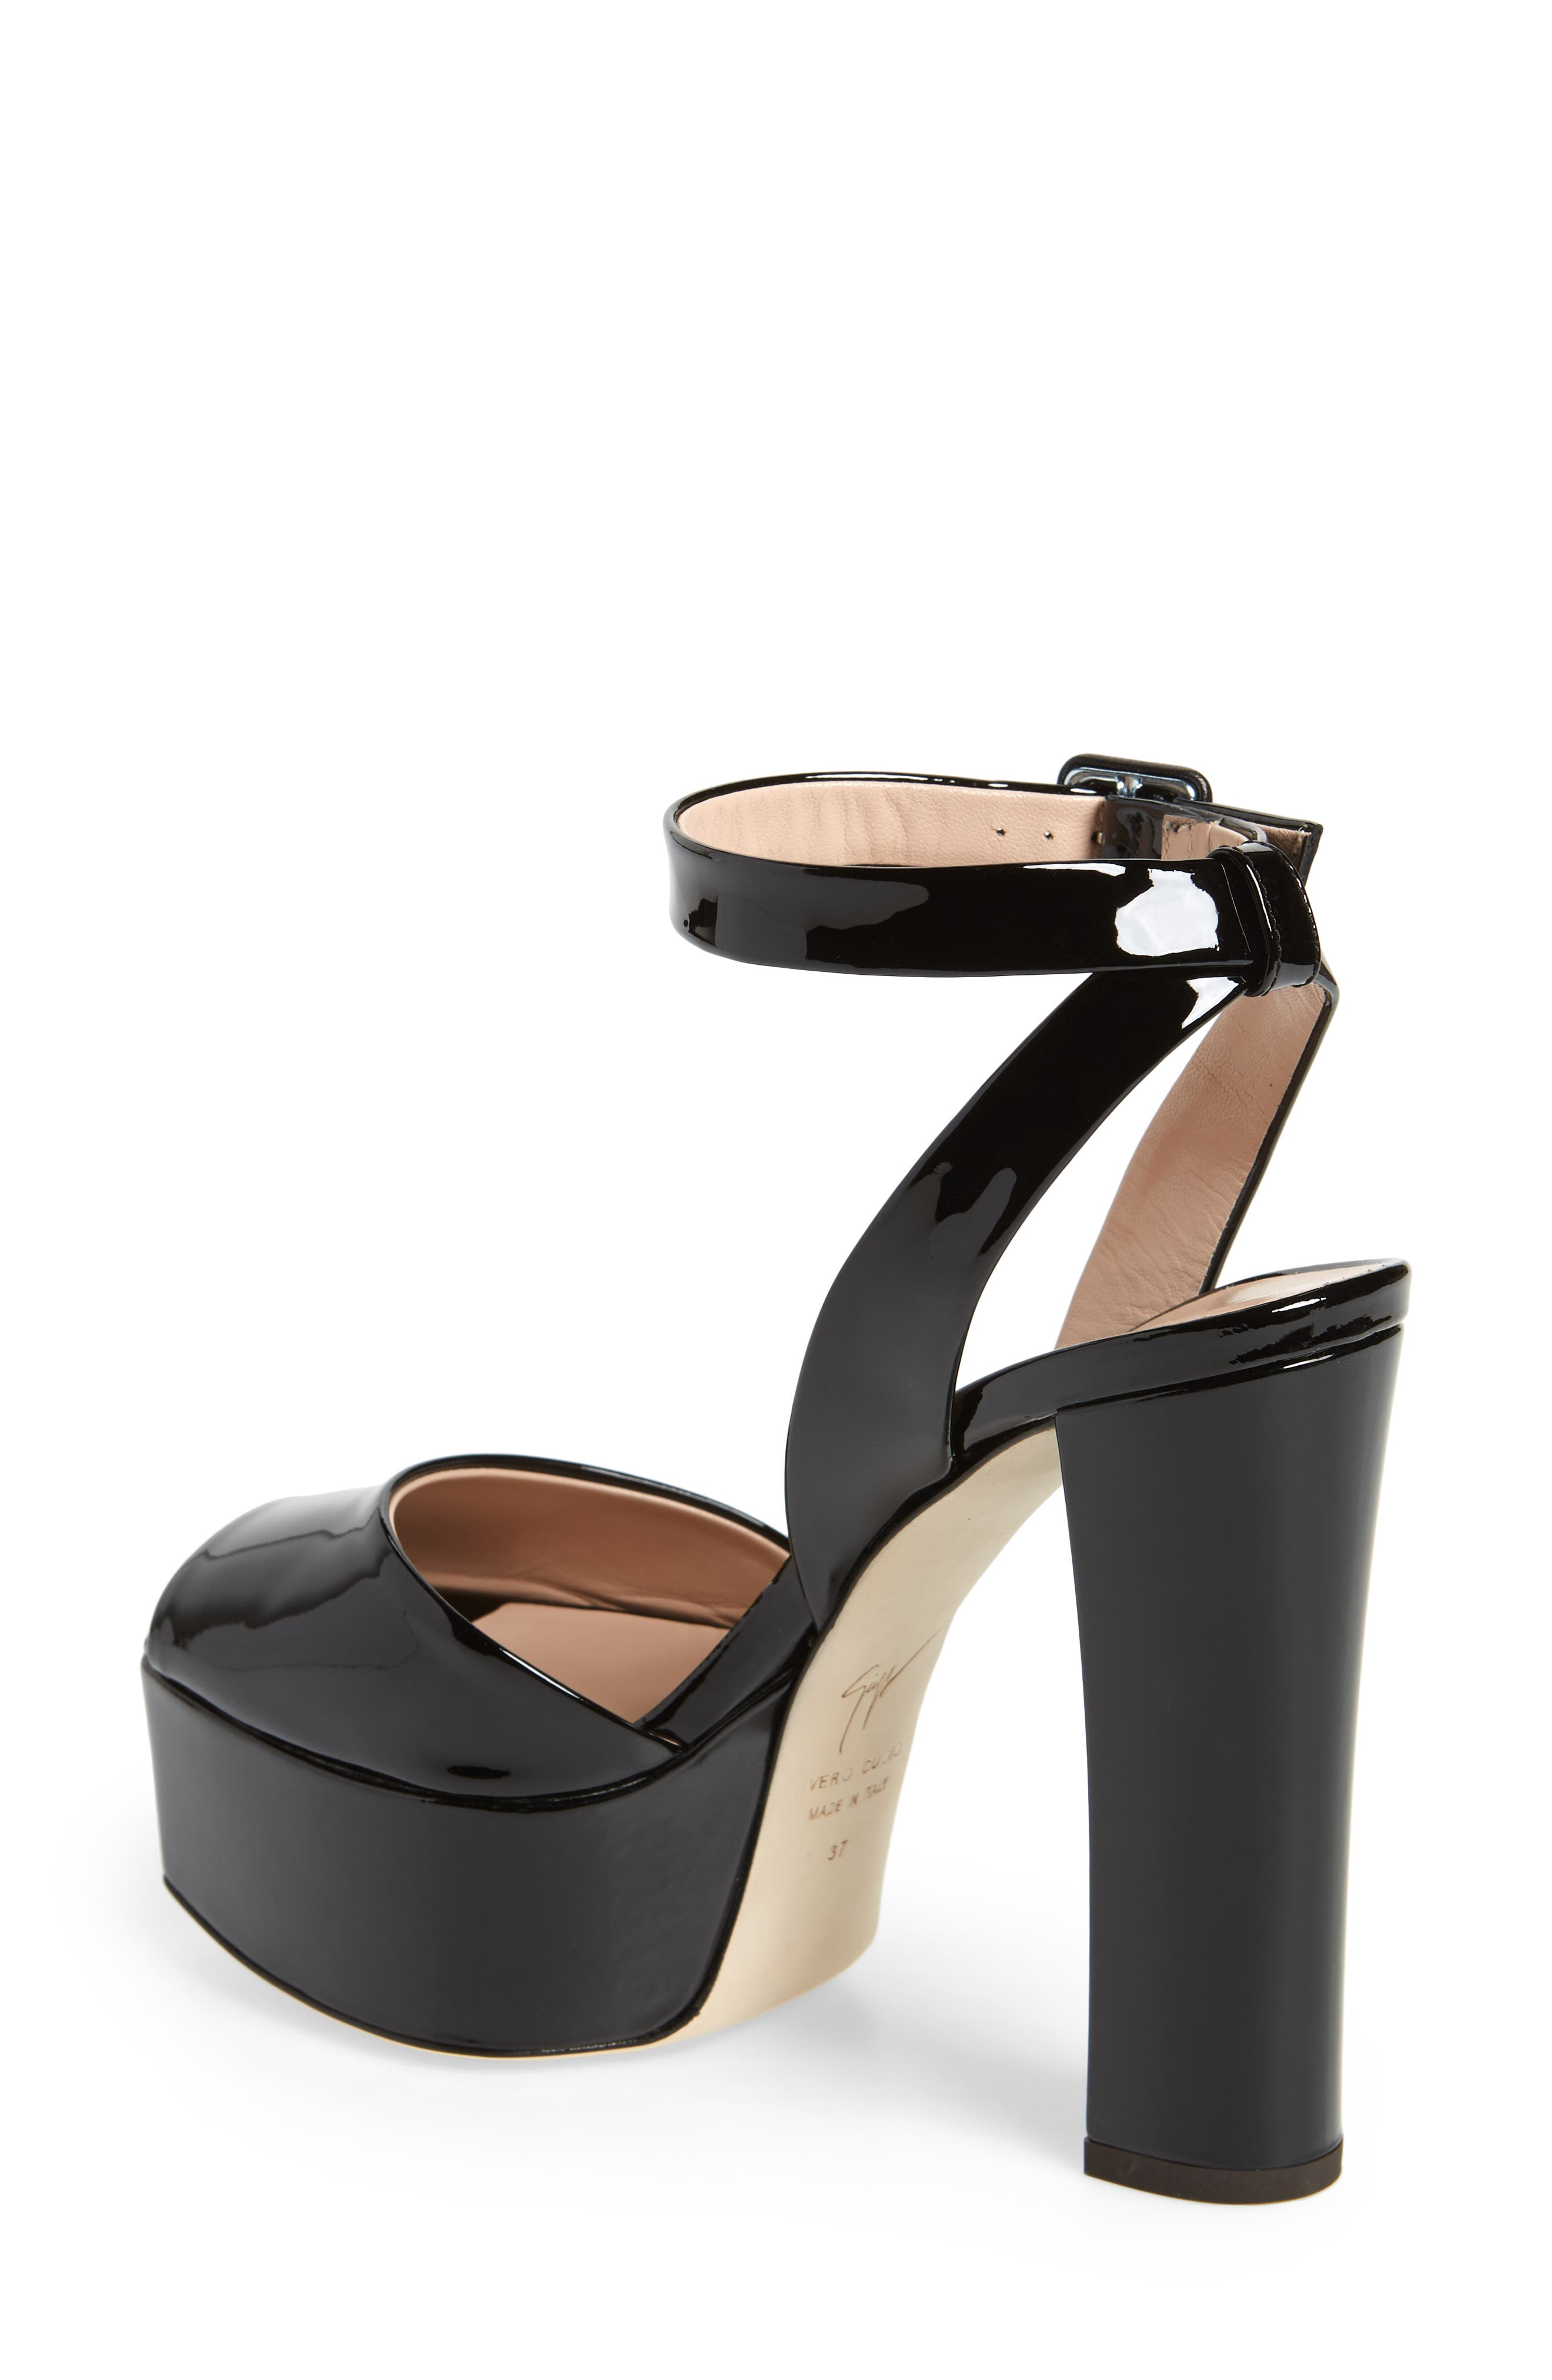 Lavinia Platform Sandal,                             Alternate thumbnail 2, color,                             Black Patent